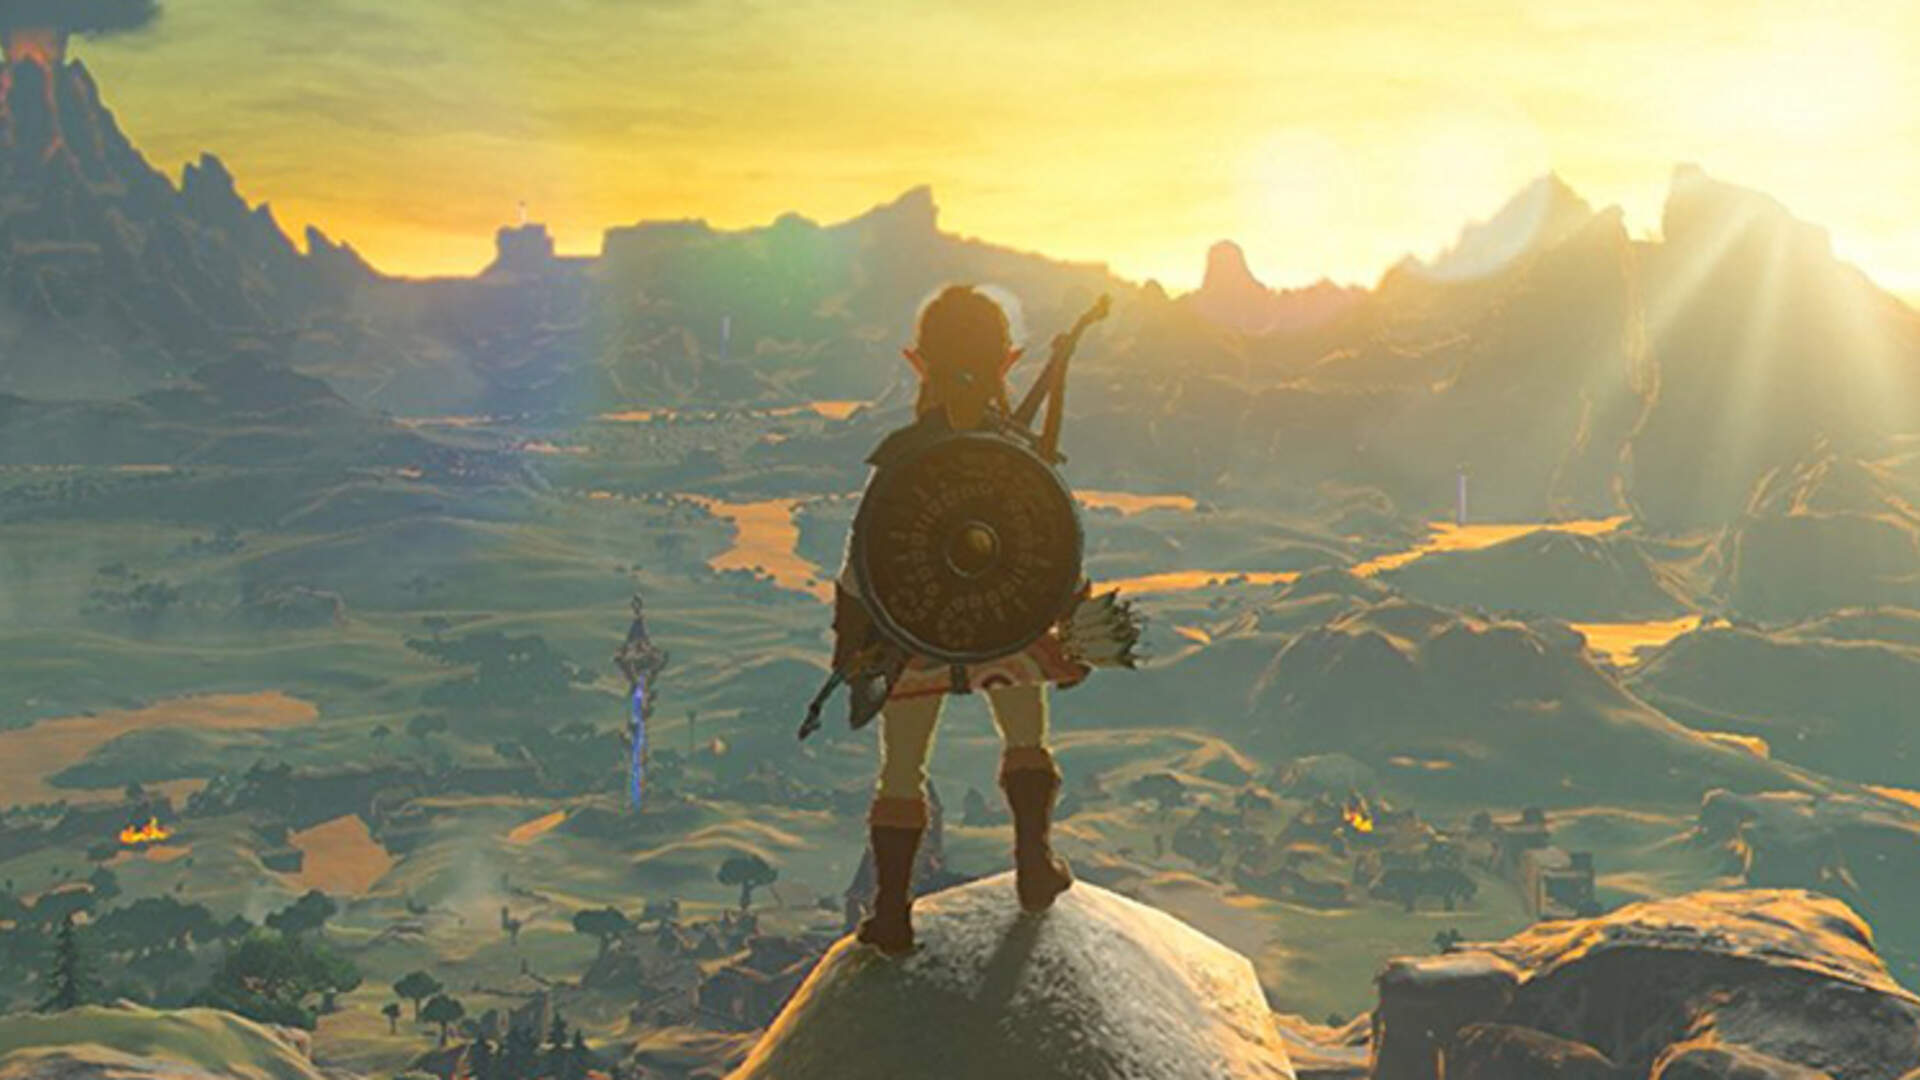 The Legend of Zelda: Breath of the Wild Wins Big at 2018 DICE Awards, Including Game of the Year